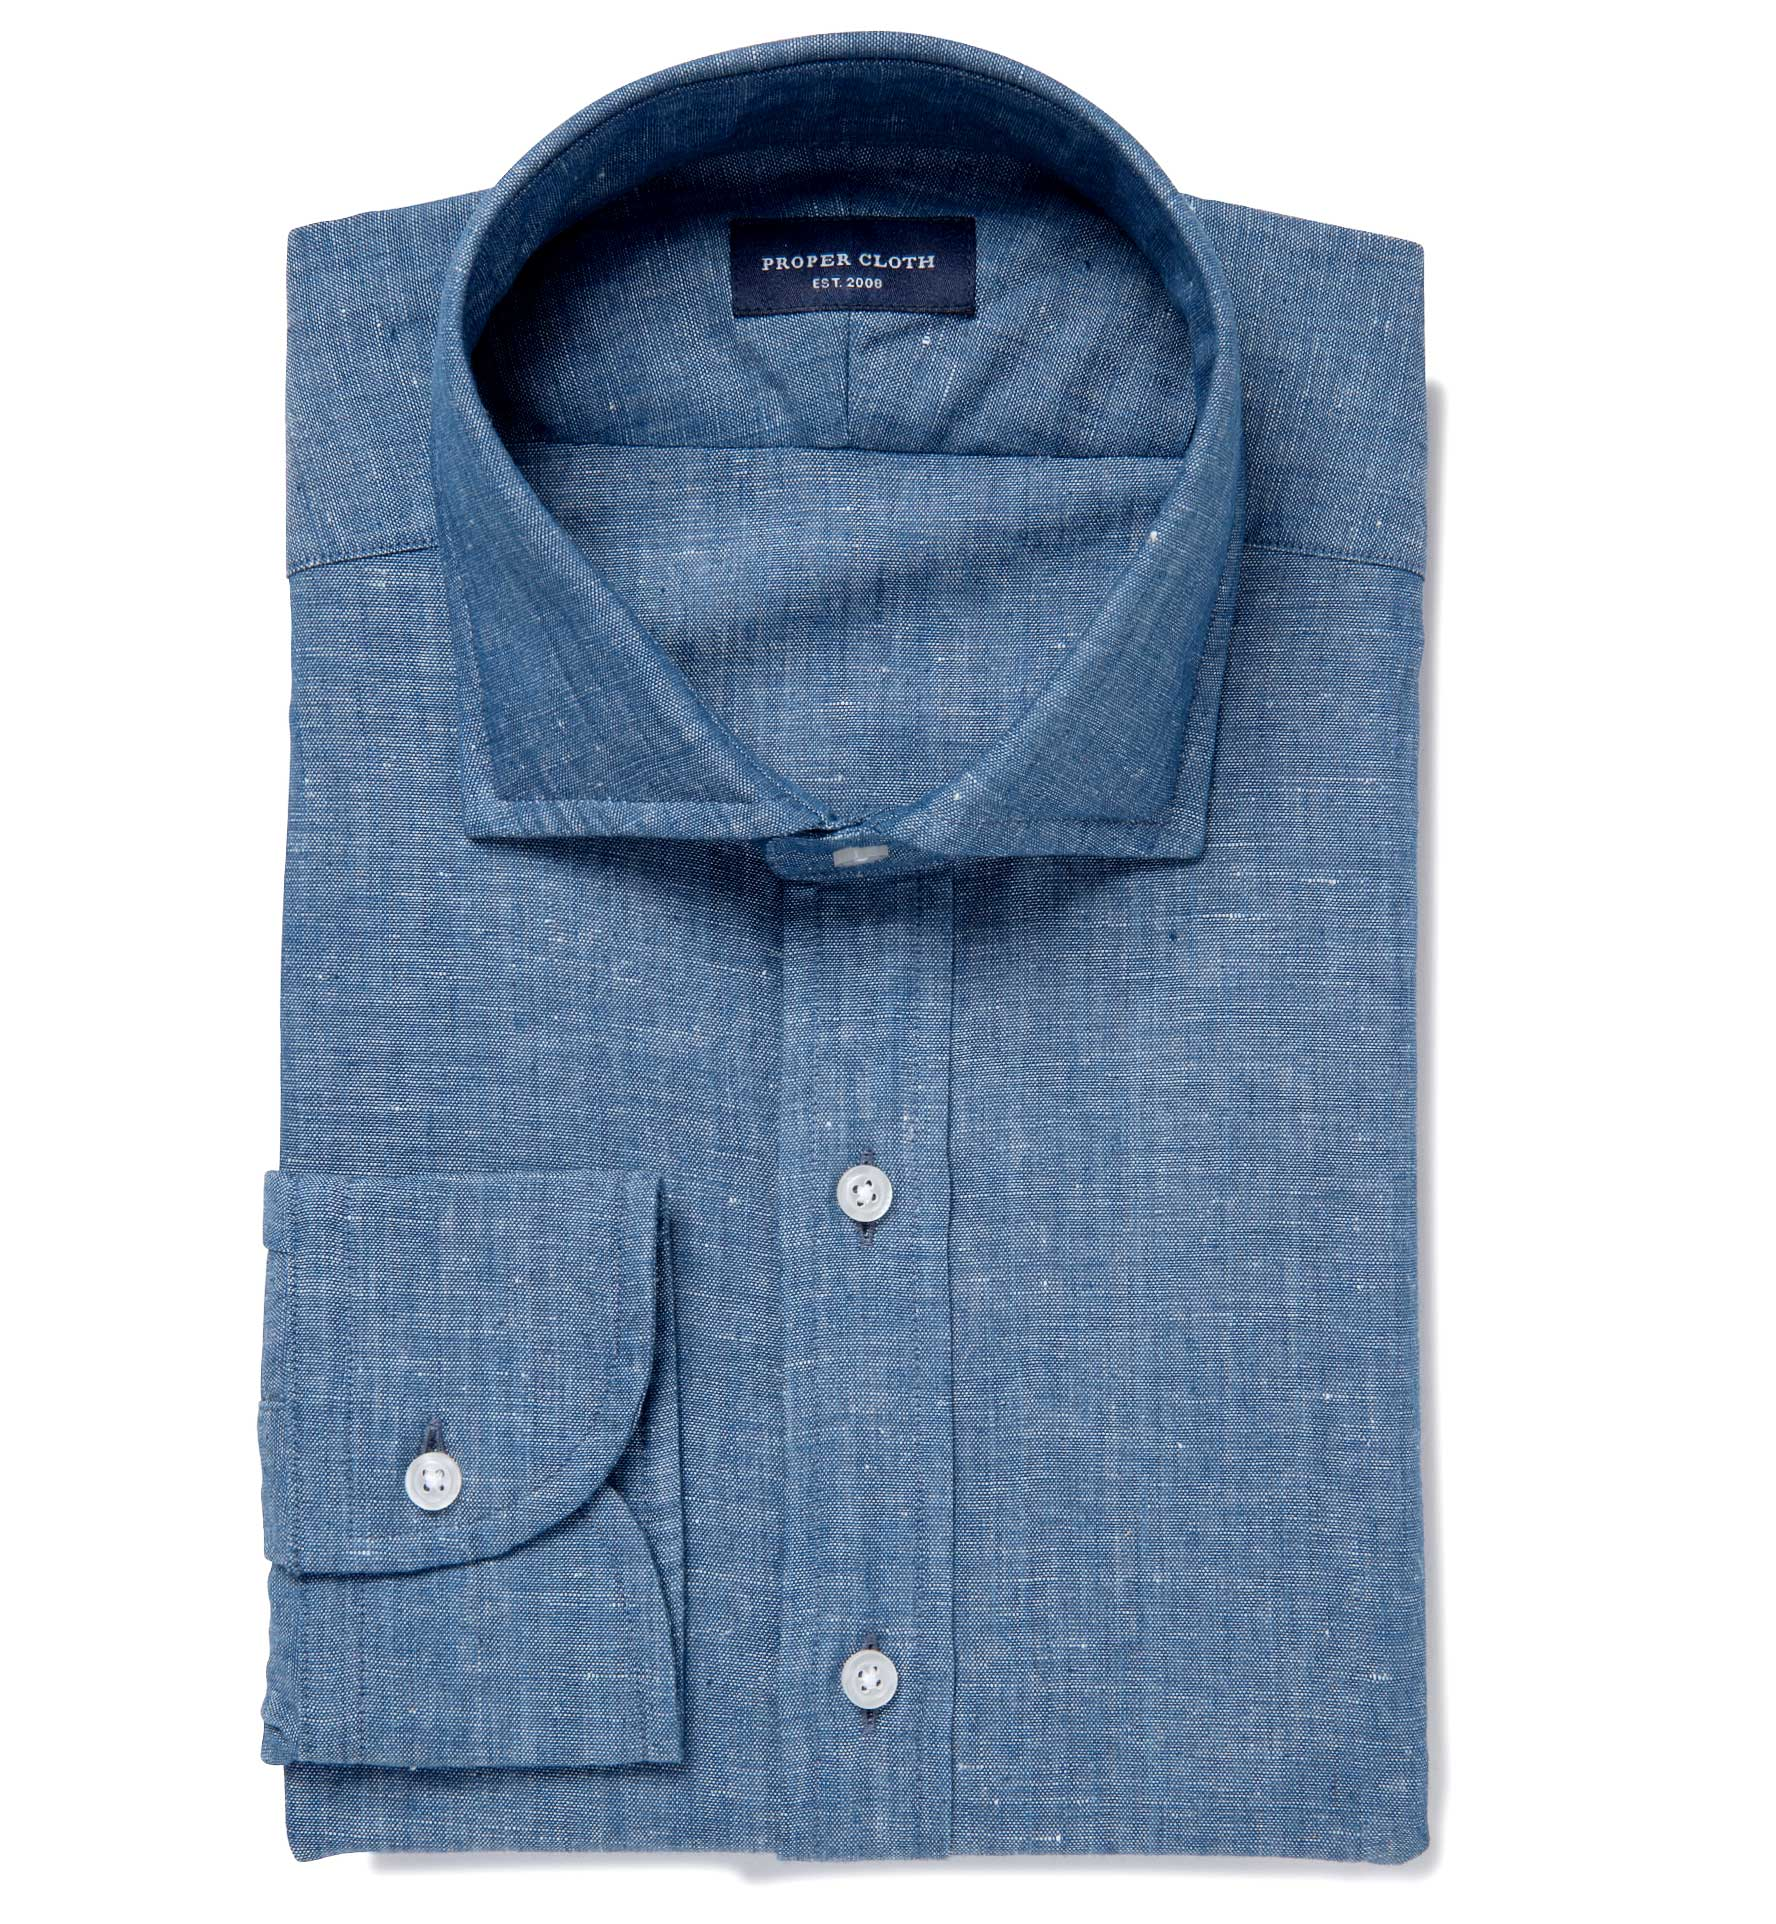 Japanese Cotton And Linen Chambray Mens Dress Shirt By Proper Cloth